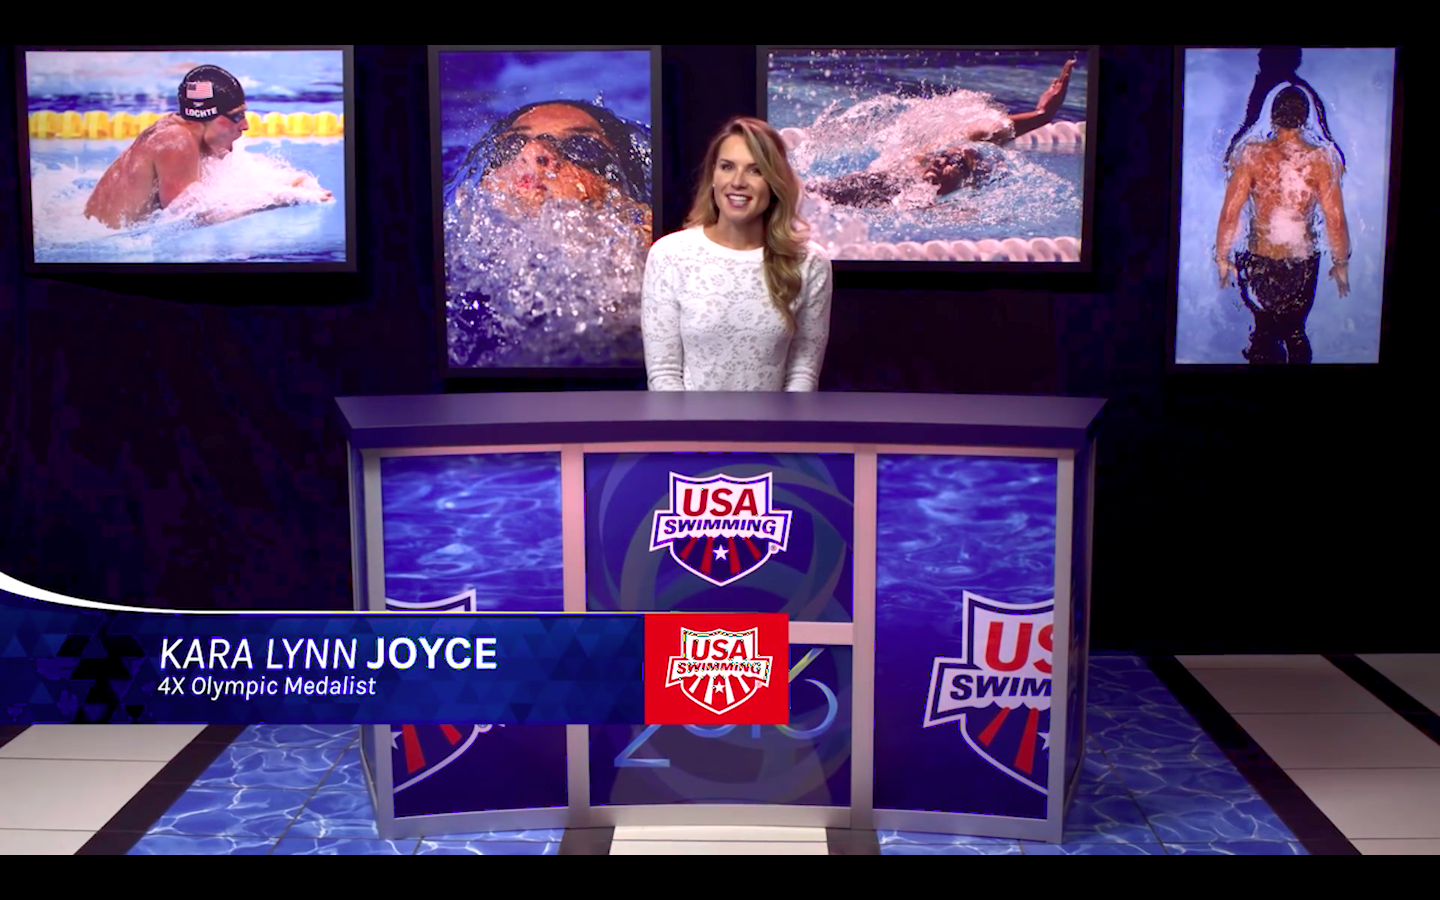 USA Swimming coverage of the Rio 2016 Olympic Games.